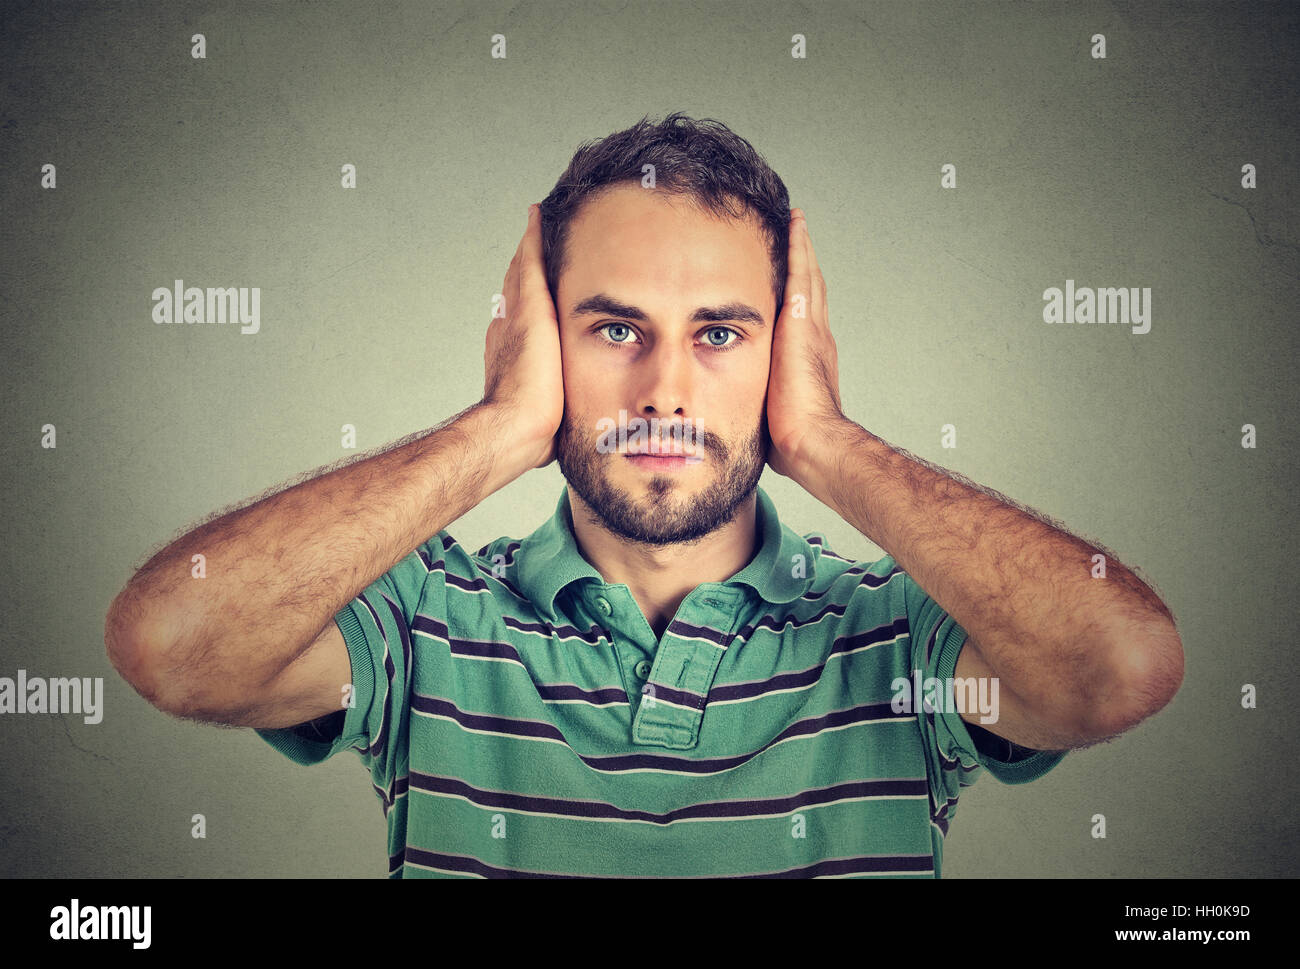 handsome, peaceful, tranquil, relaxed, young man covering his ears, observing isolated on gray wall background. - Stock Image